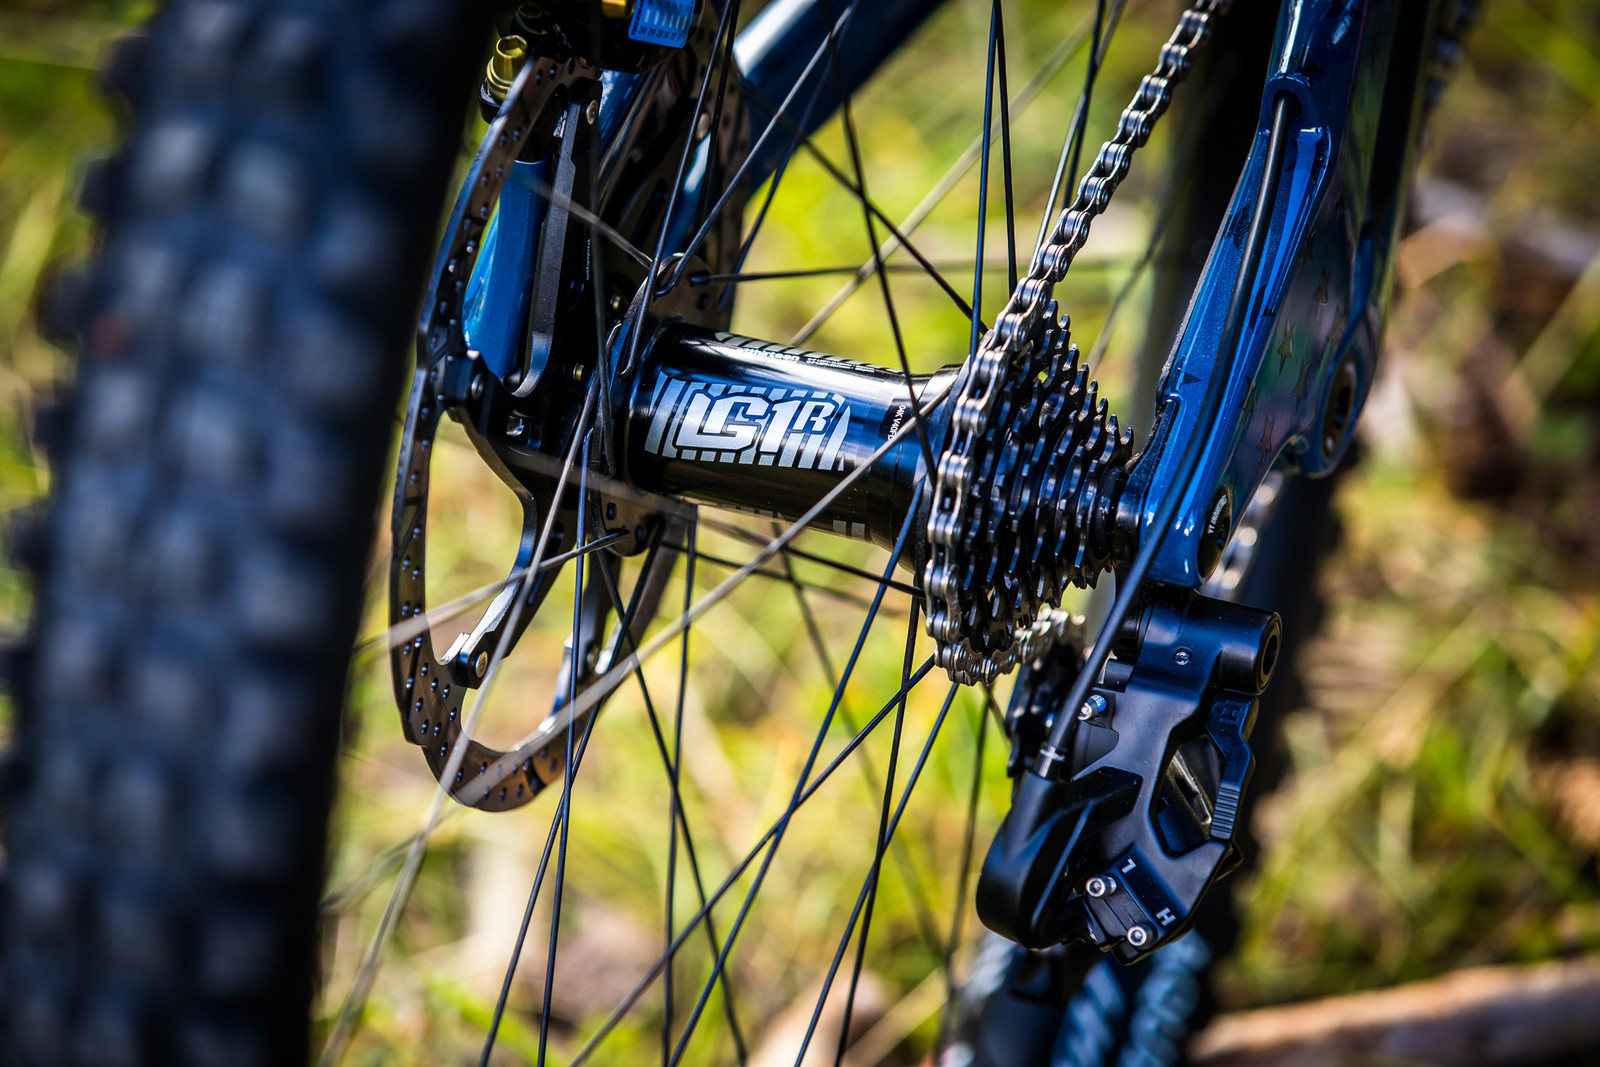 Aaron Gwin's Signature Wheels and Prototype TRP Derailleur - WORLD CHAMPS BIKE - Aaron Gwin's YT TUES - Mountain Biking Pictures - Vital MTB